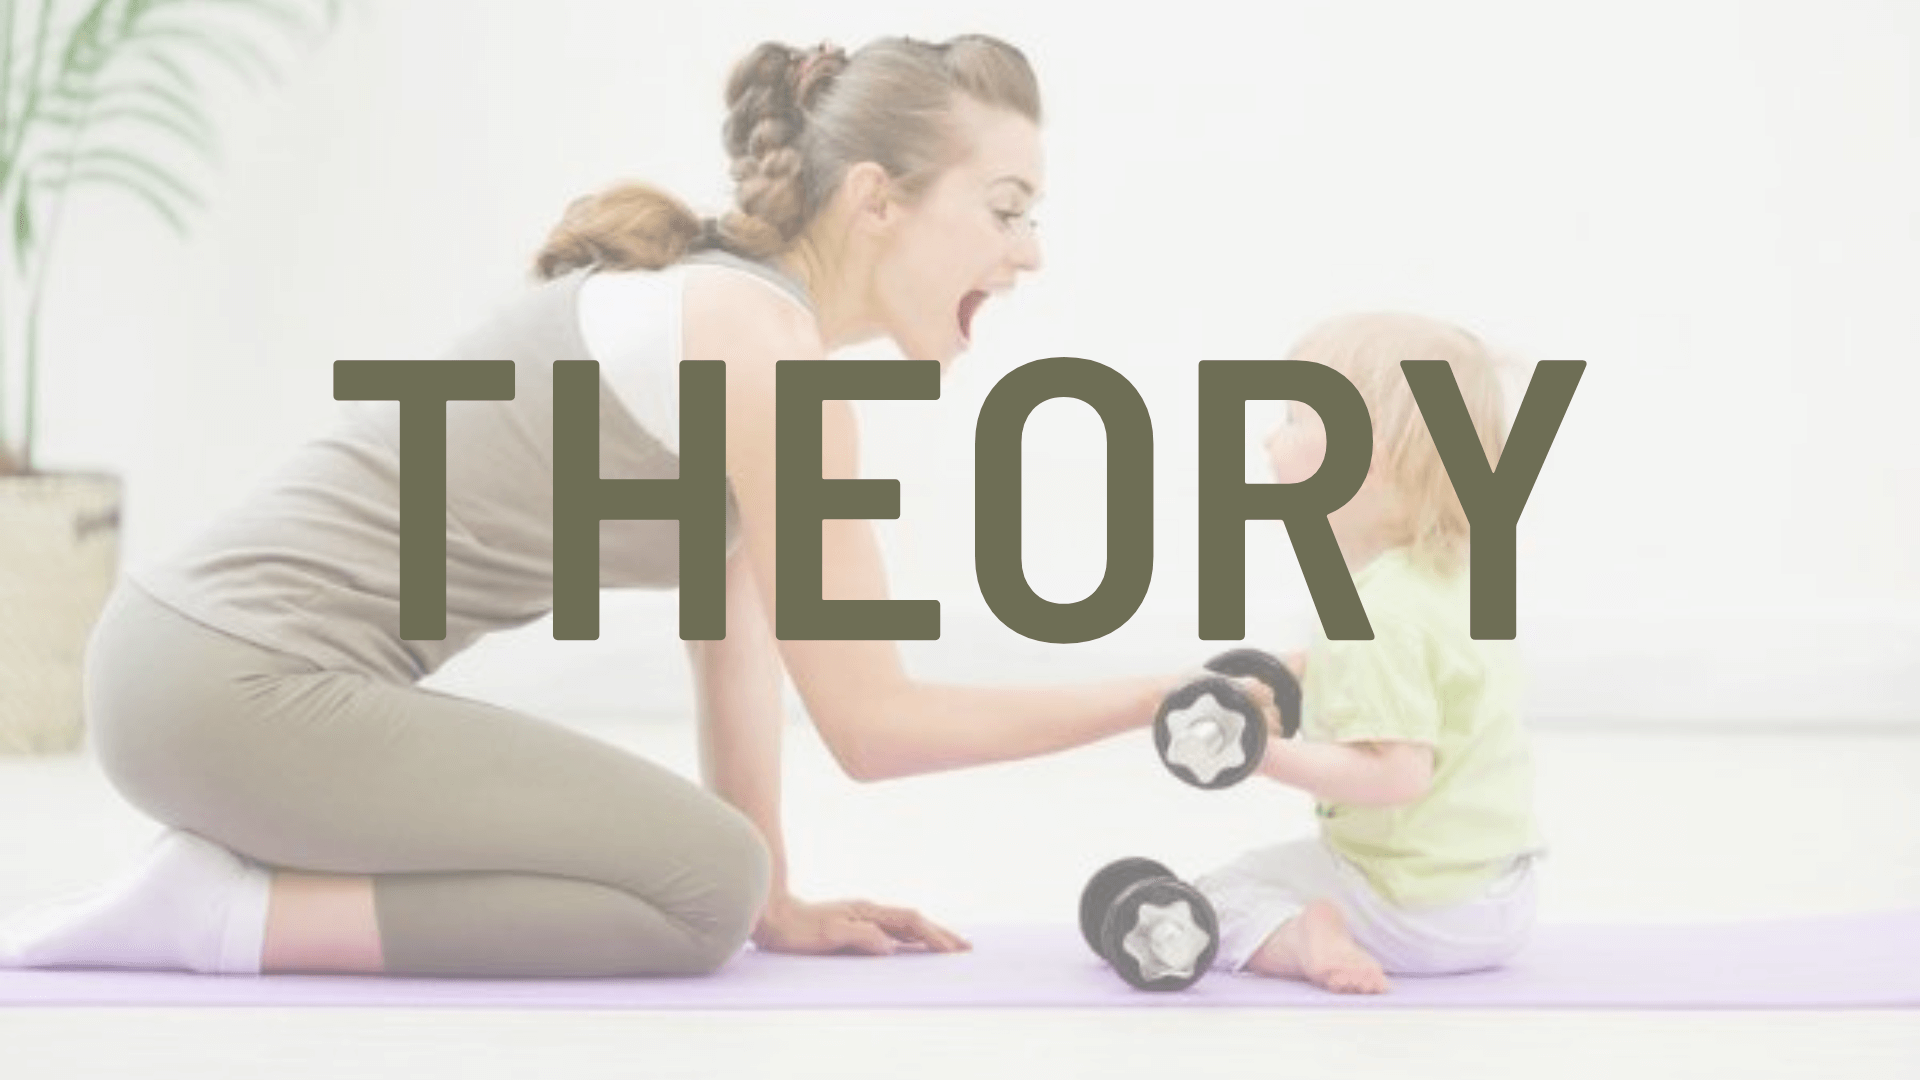 Theory Postnatal Essentials for Pilates and Fitness Professionals